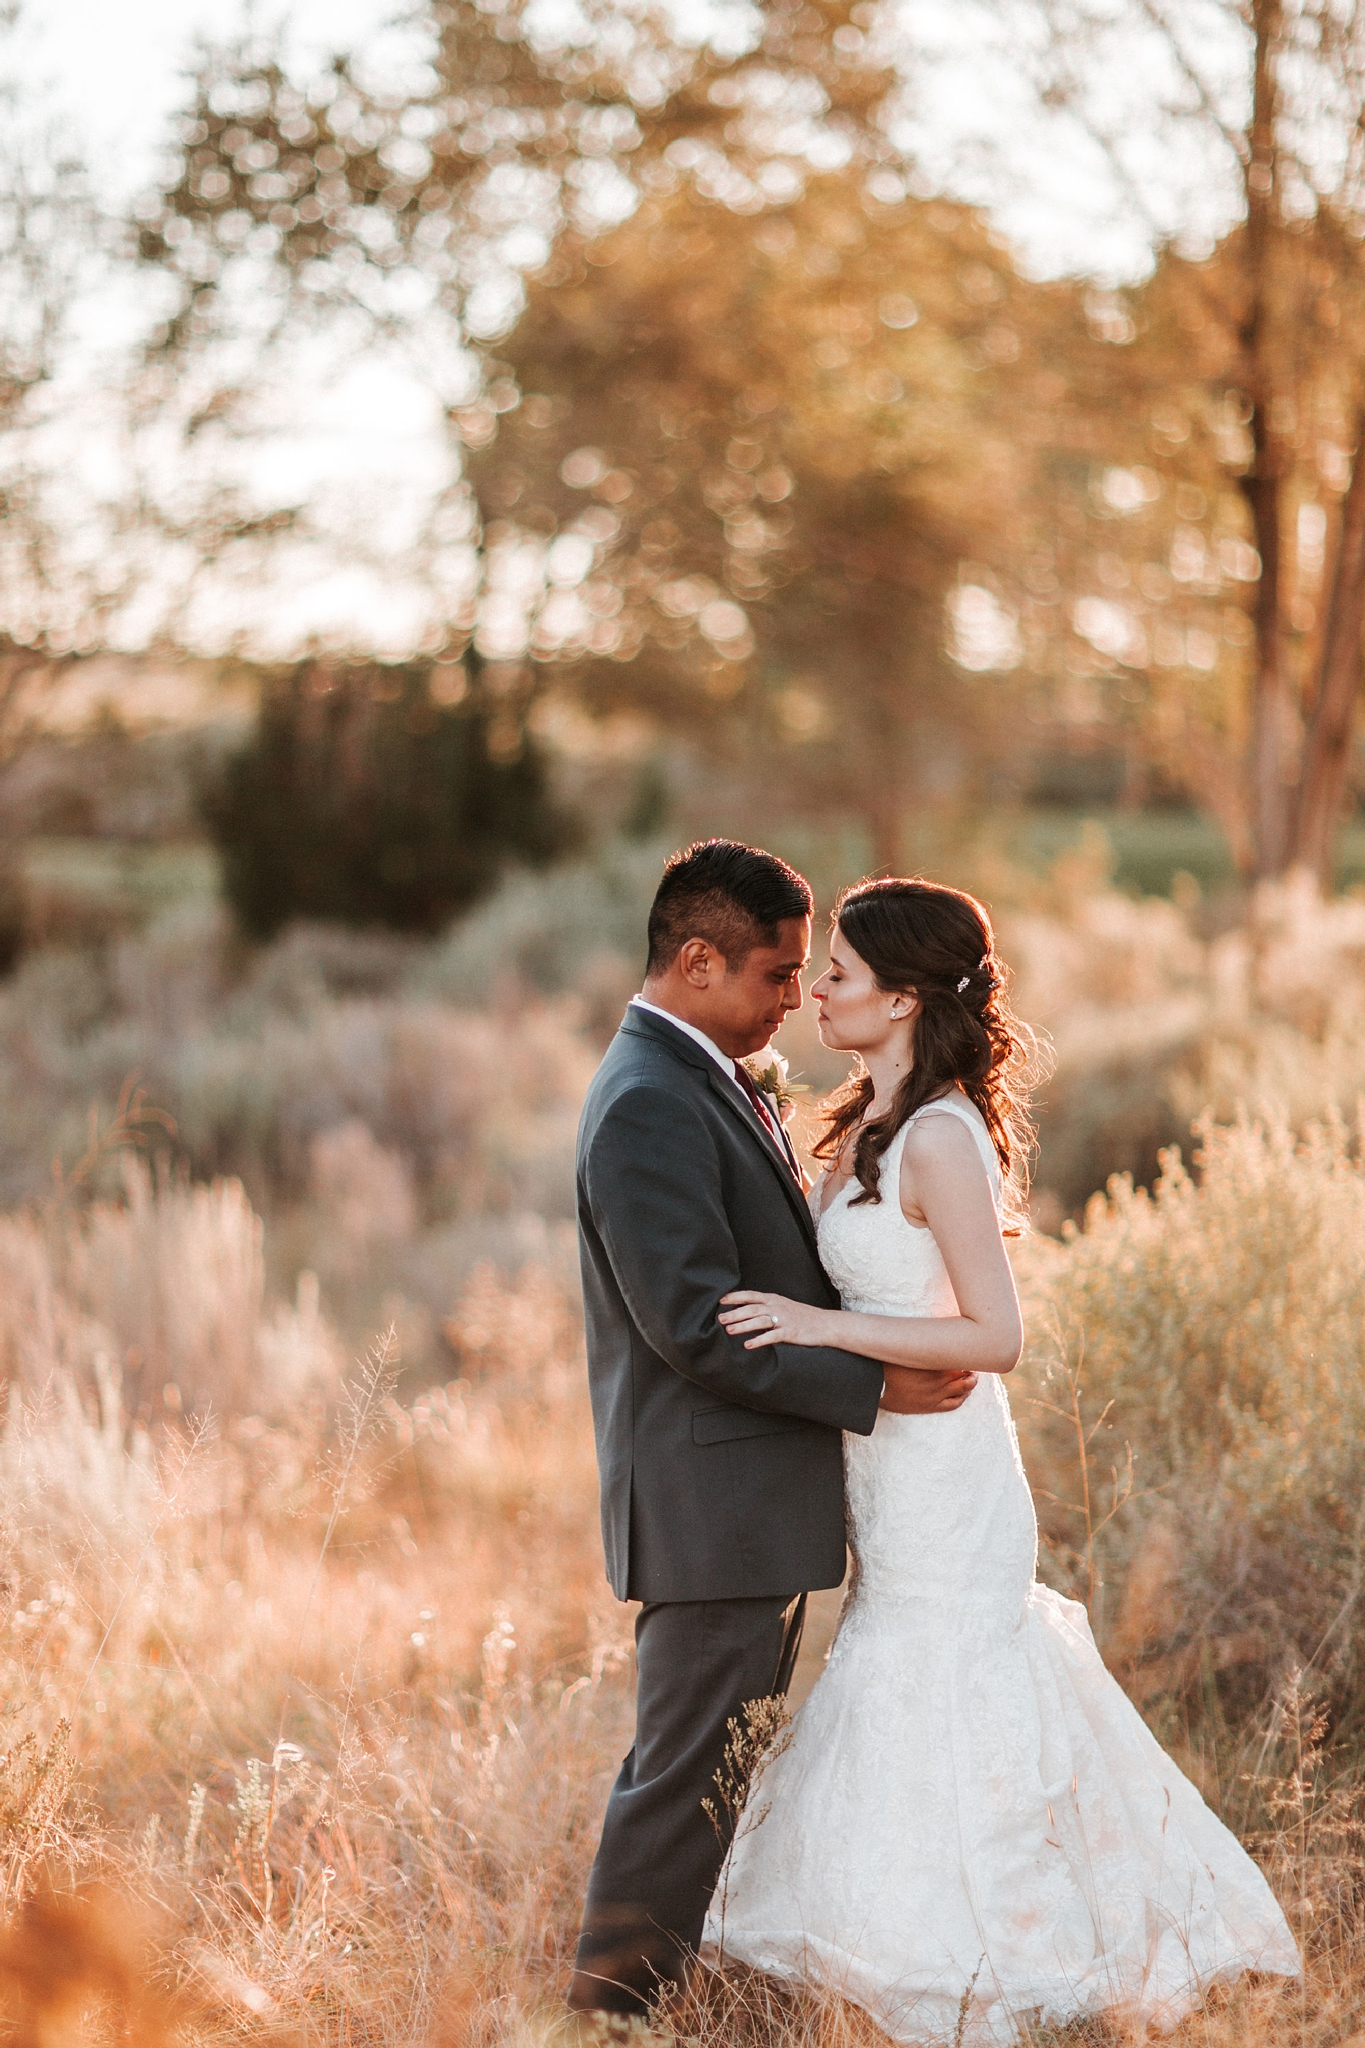 Alicia+lucia+photography+-+albuquerque+wedding+photographer+-+santa+fe+wedding+photography+-+new+mexico+wedding+photographer+-+new+mexico+wedding+-+wedding+vows+-+writing+your+own+vows+-+wedding+inspo_0001.jpg